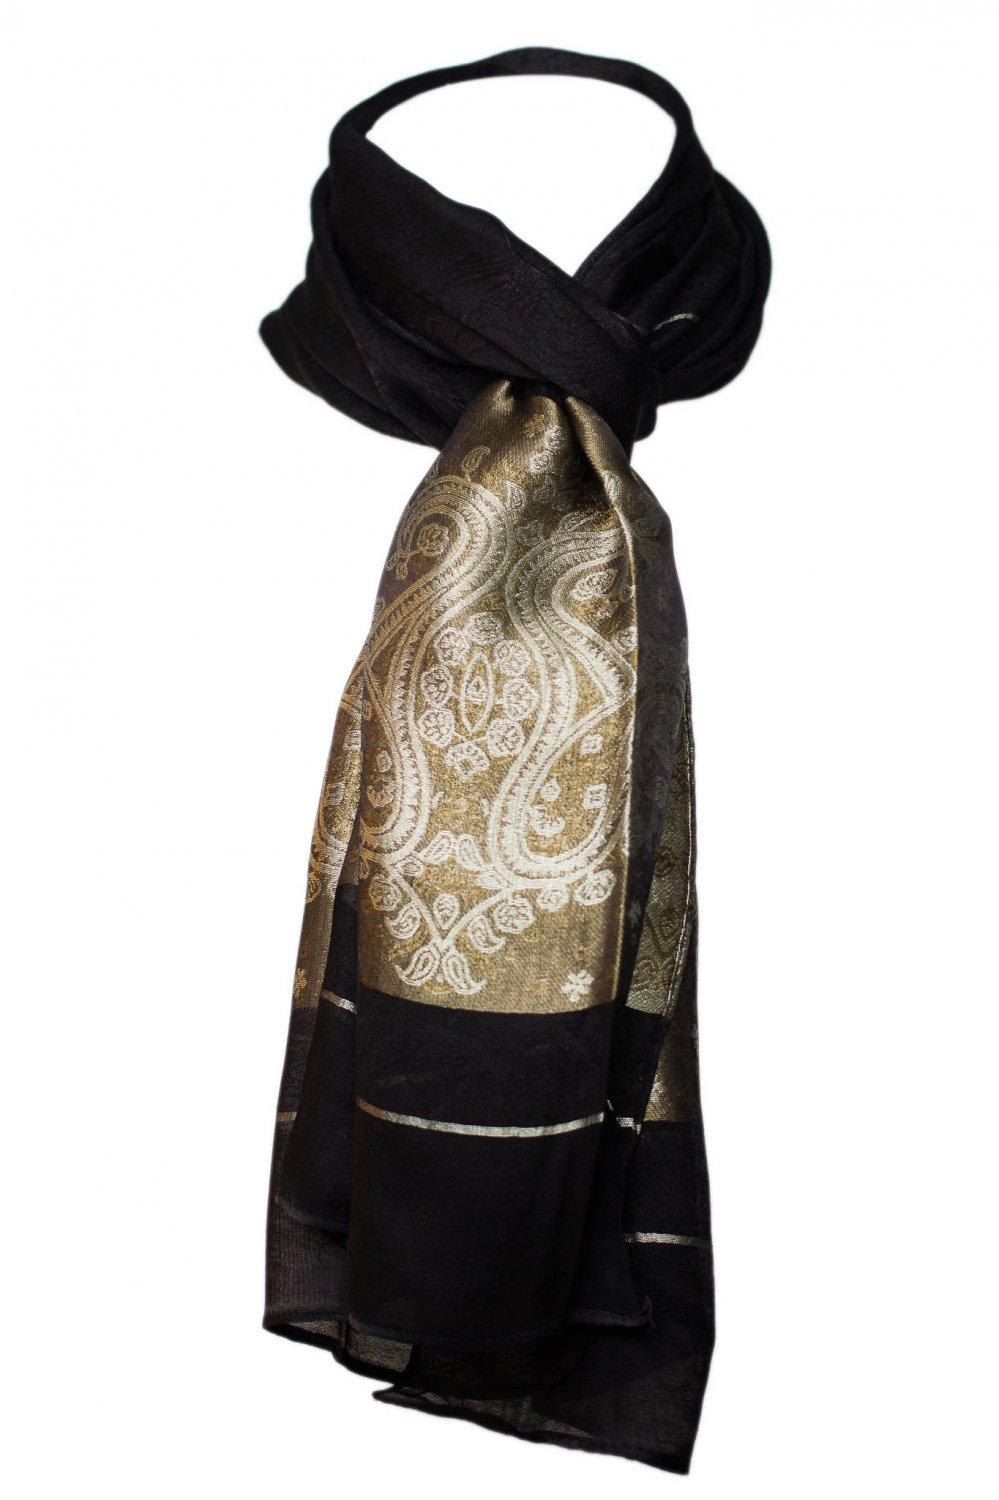 Women's Paisley Floral Silk Scarf - Black & Gold 20 x 64 inch